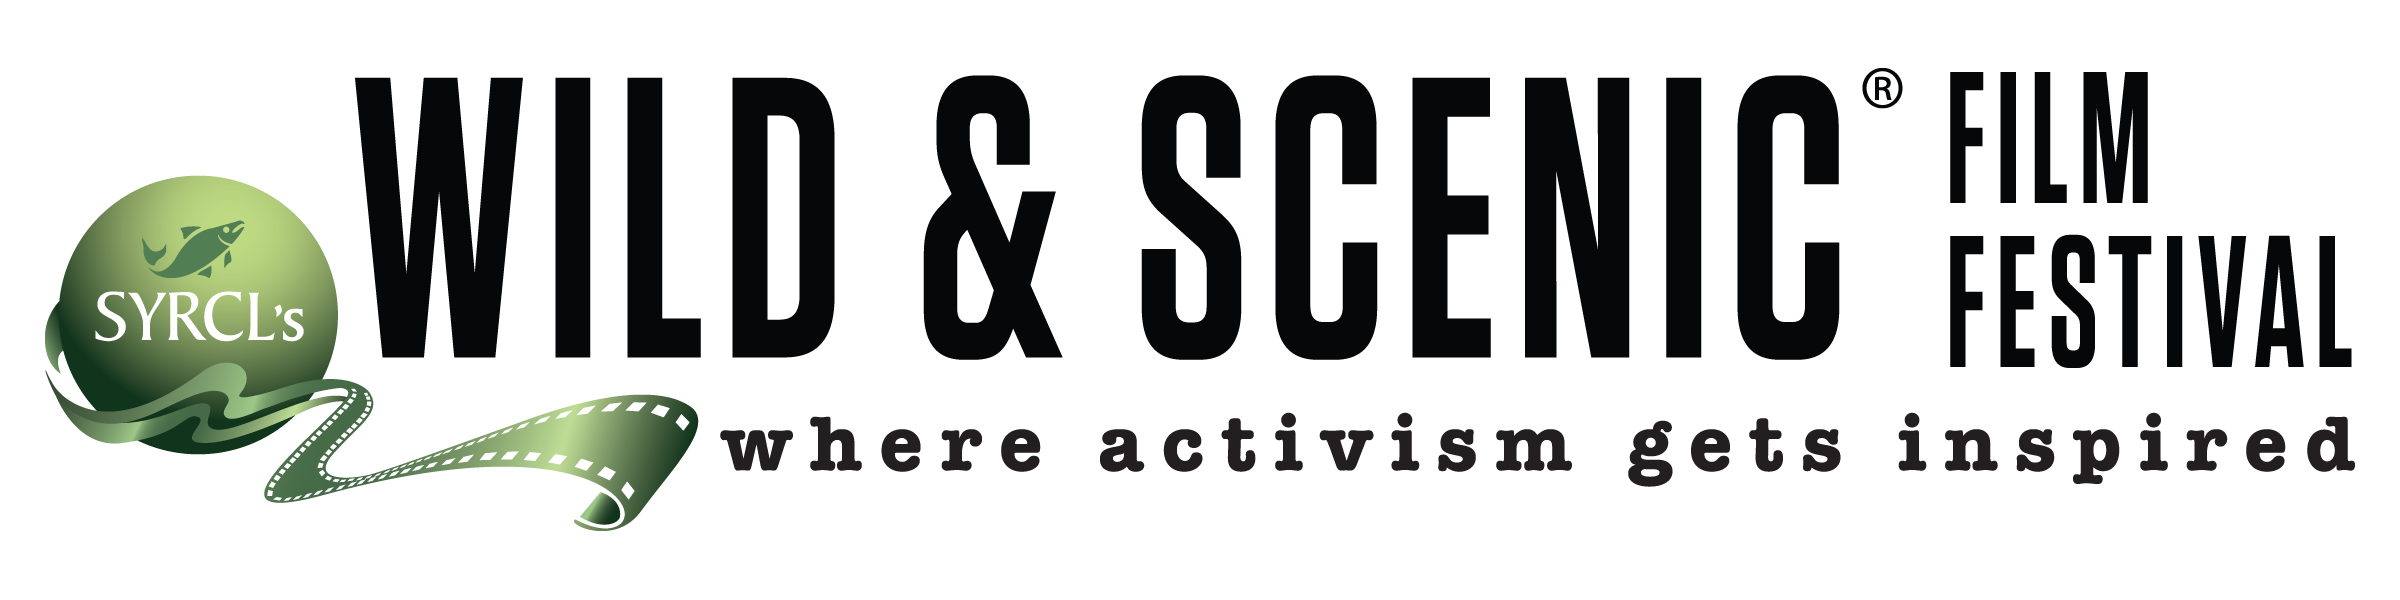 Alabama Rivers Alliance, Energy Alabama, Waterkeepers Alabama & Flint River Conservation Association present SYRCL's Wild & Scenic Film Festival On Tour